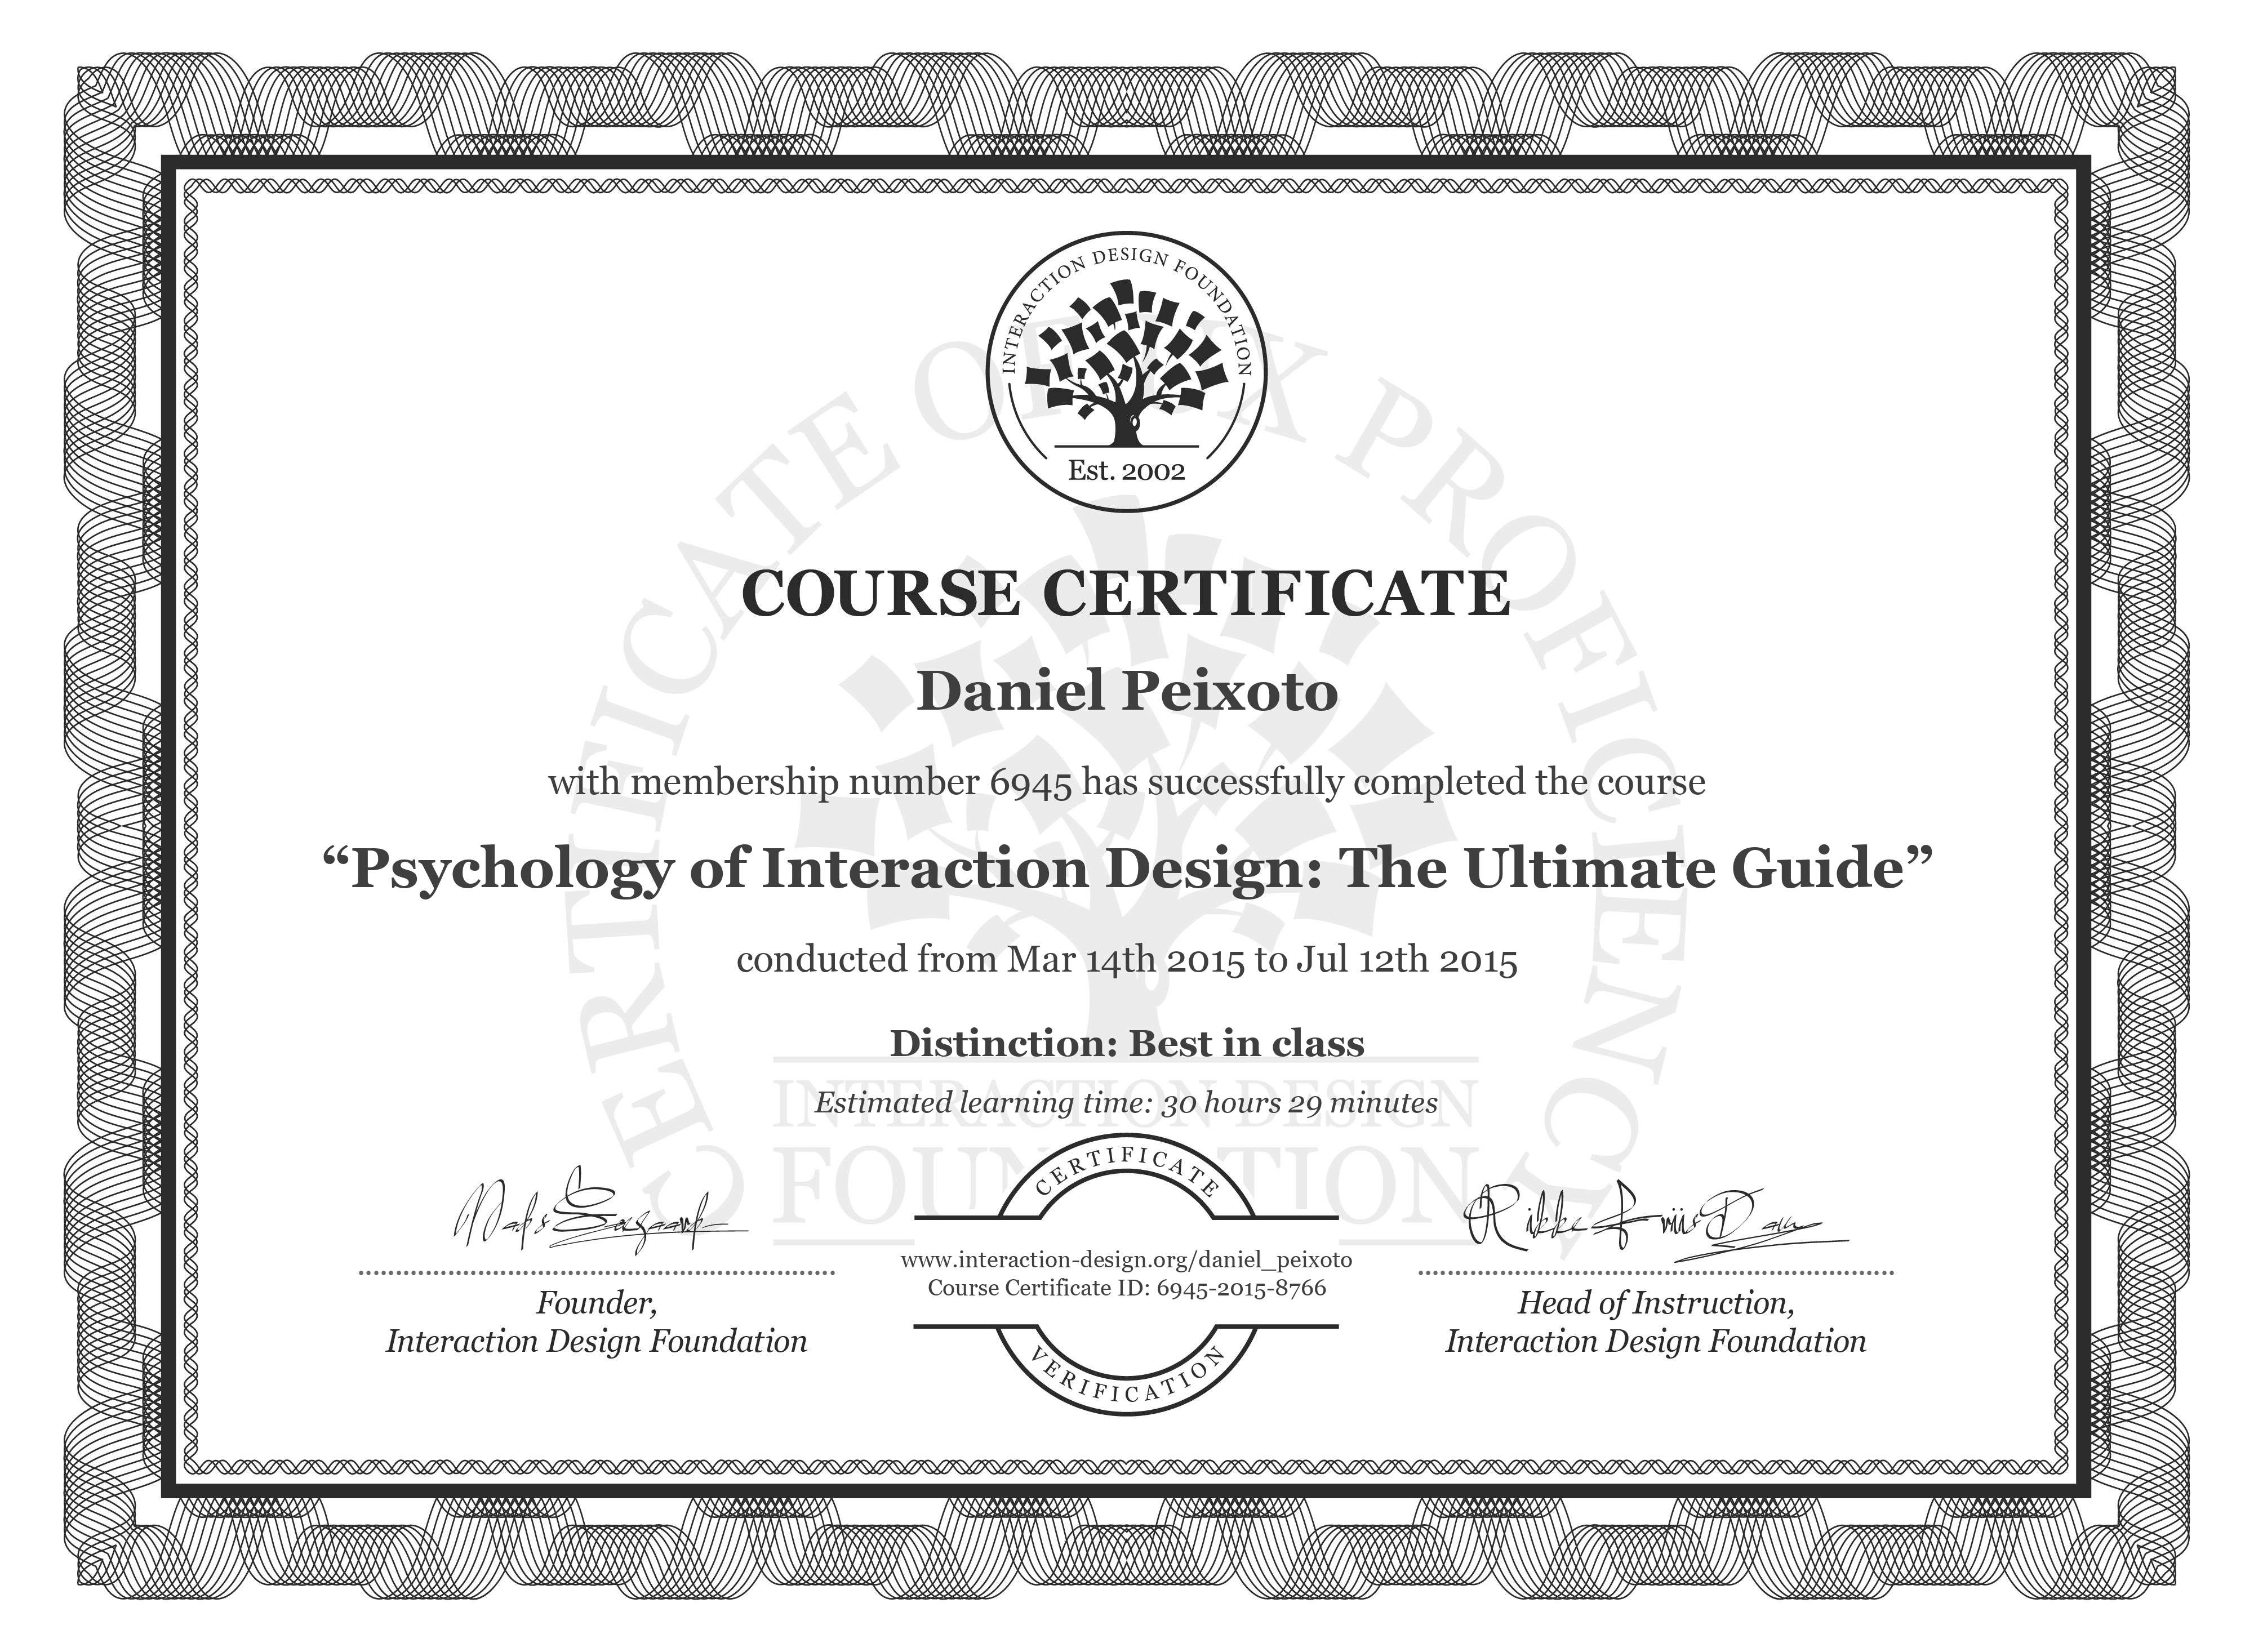 Daniel Peixoto: Course Certificate - Psychology of Interaction Design: The Ultimate Guide